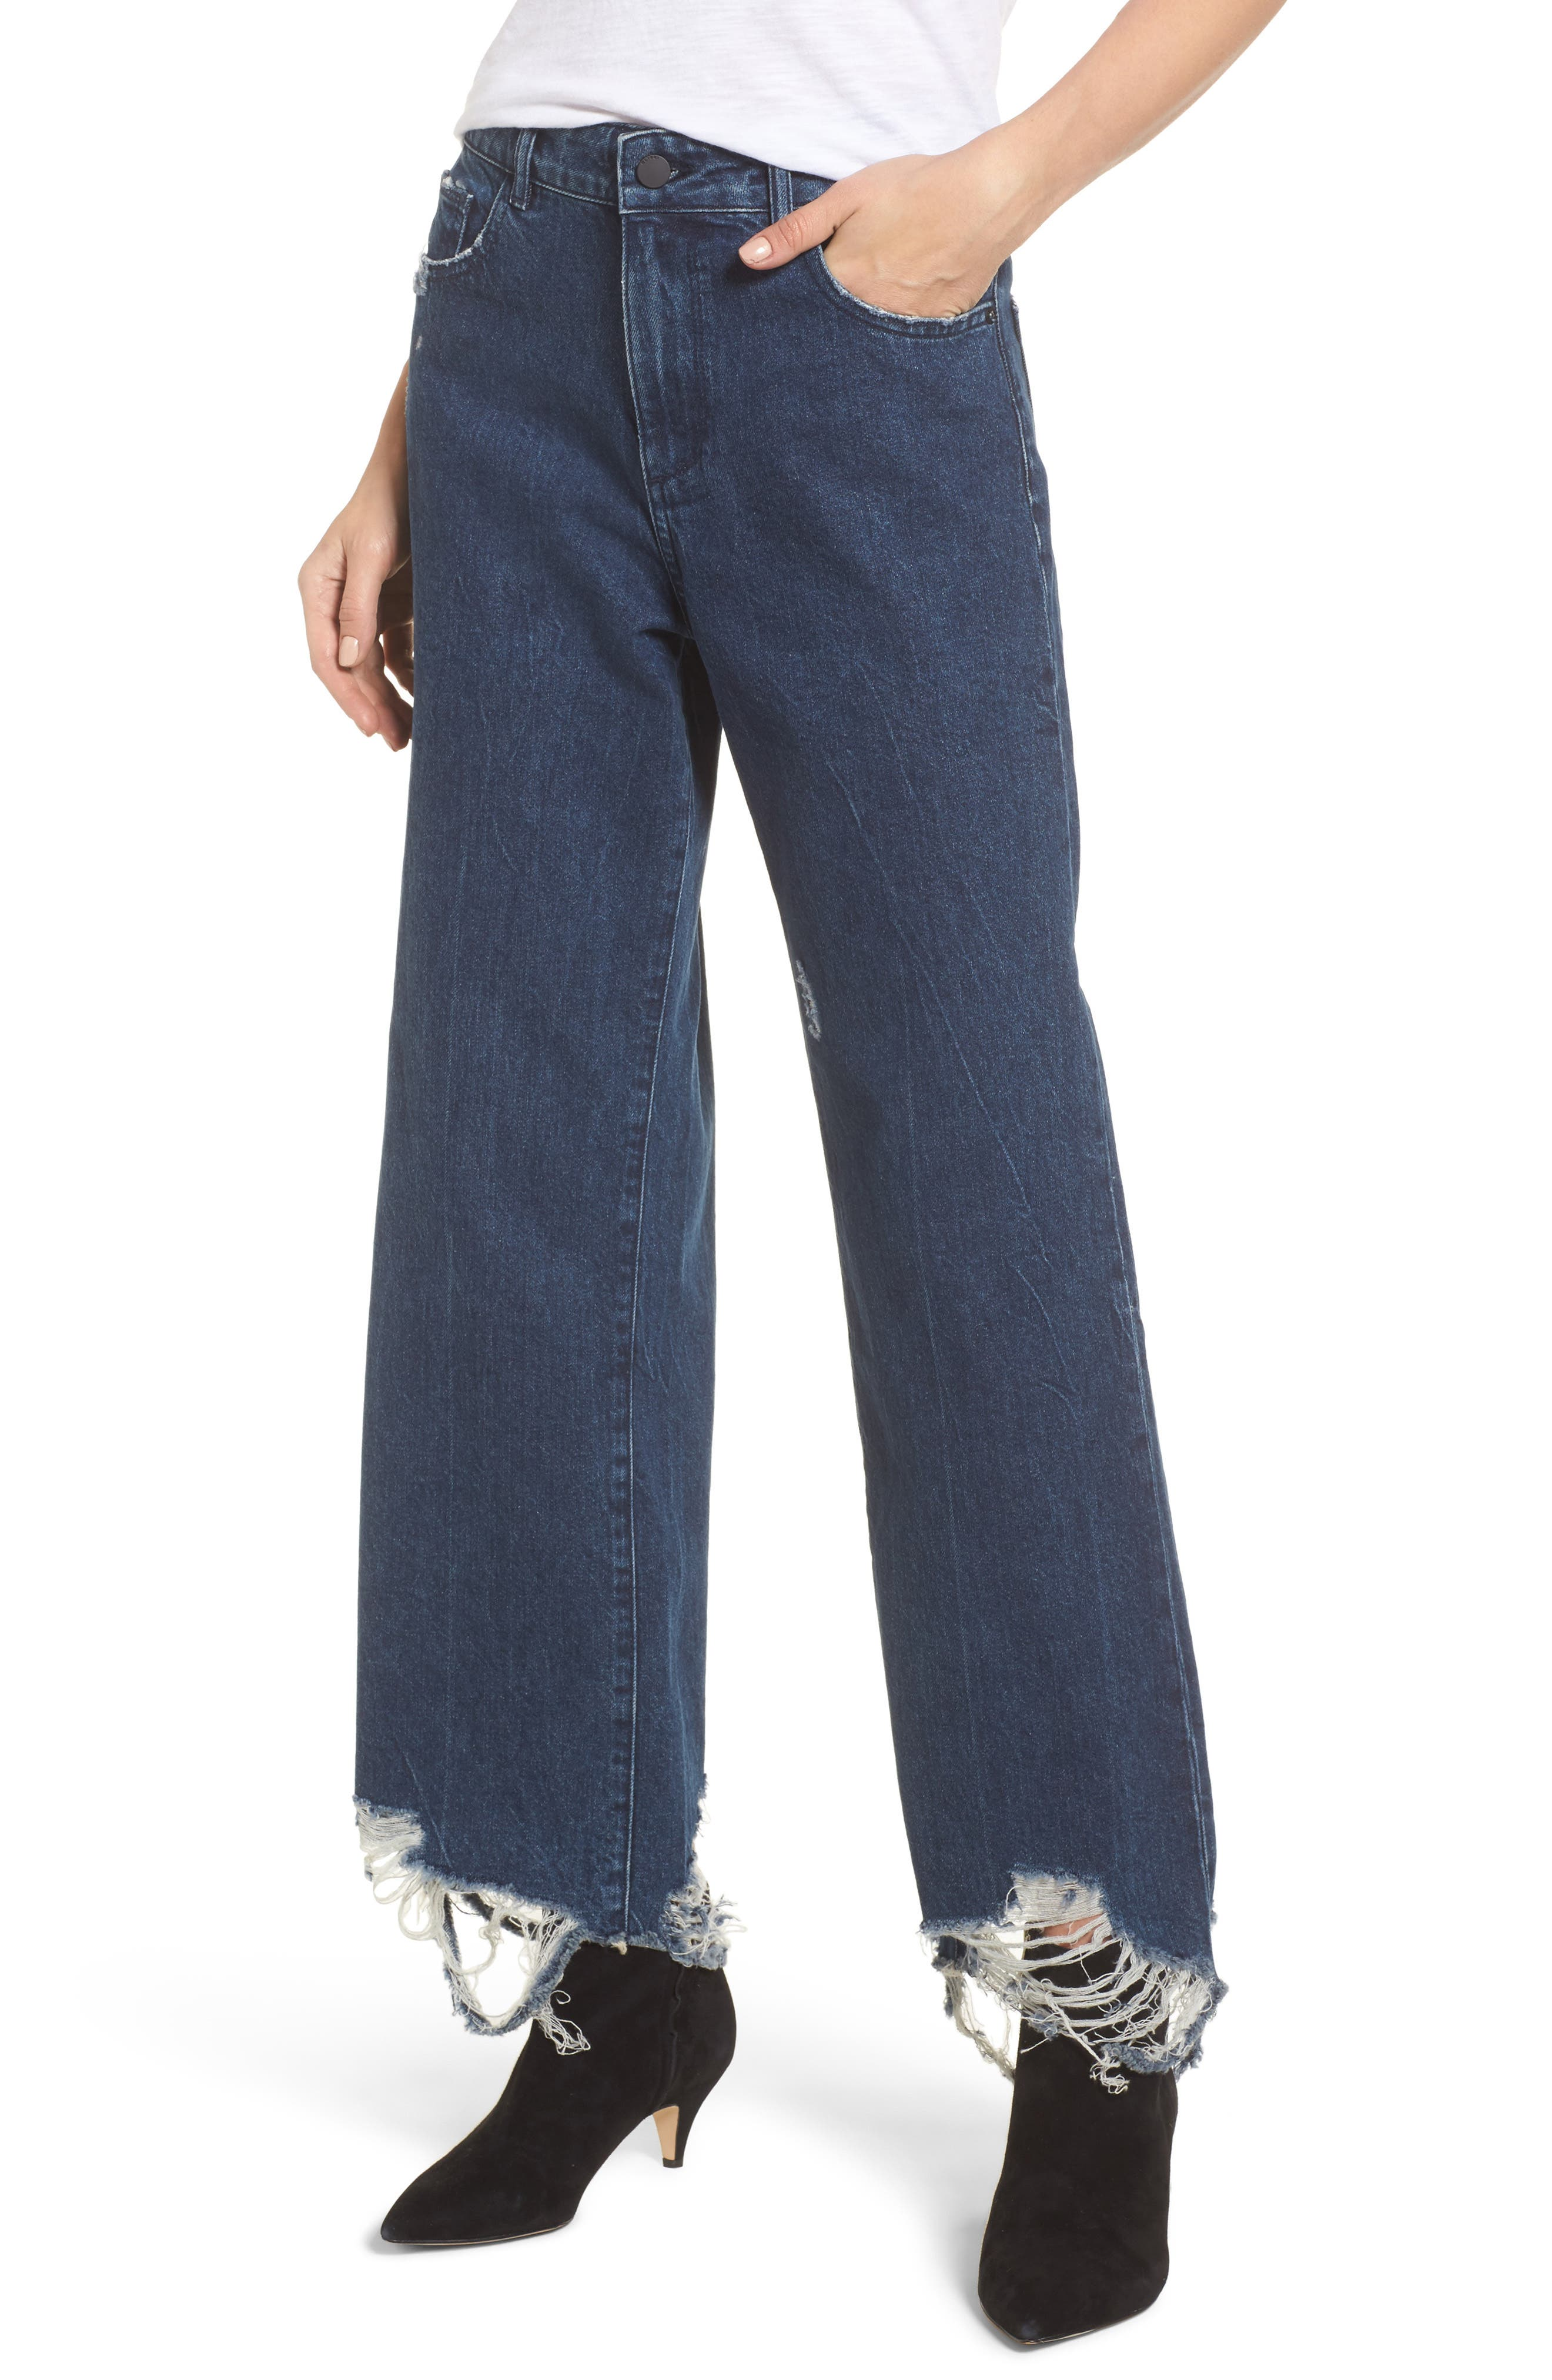 Hepburn High Waist Wide Leg Jeans,                             Main thumbnail 1, color,